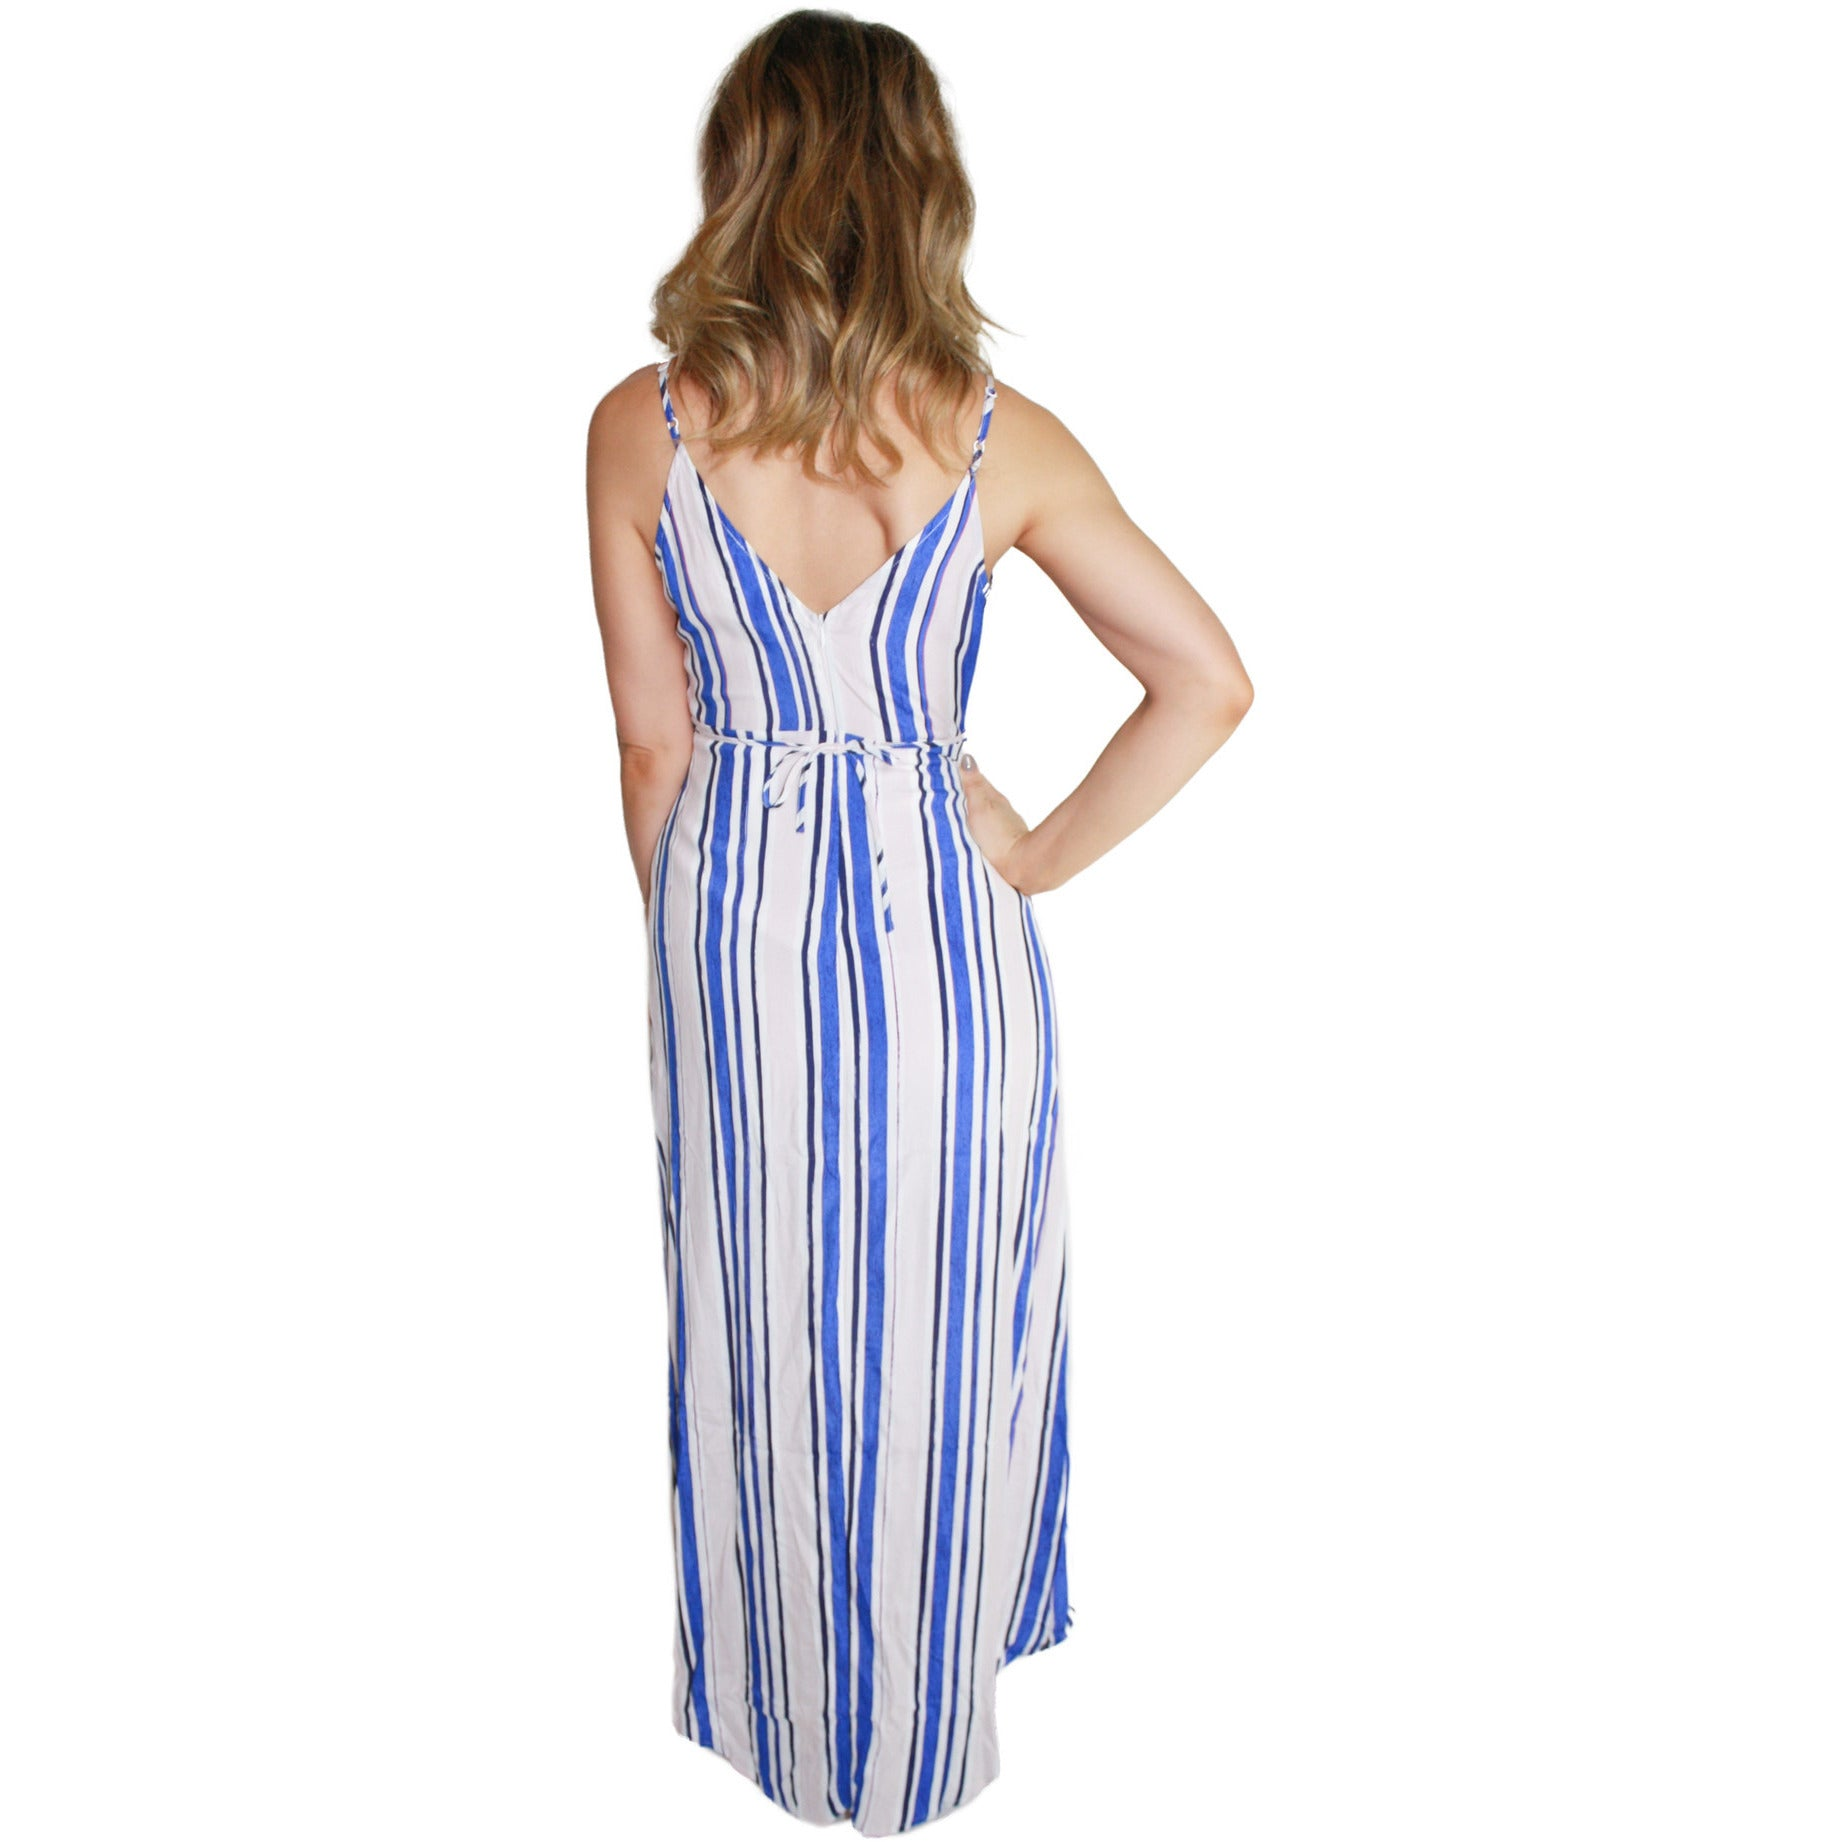 Donna Dress in Blue Blush Stripe (FINAL SALE)